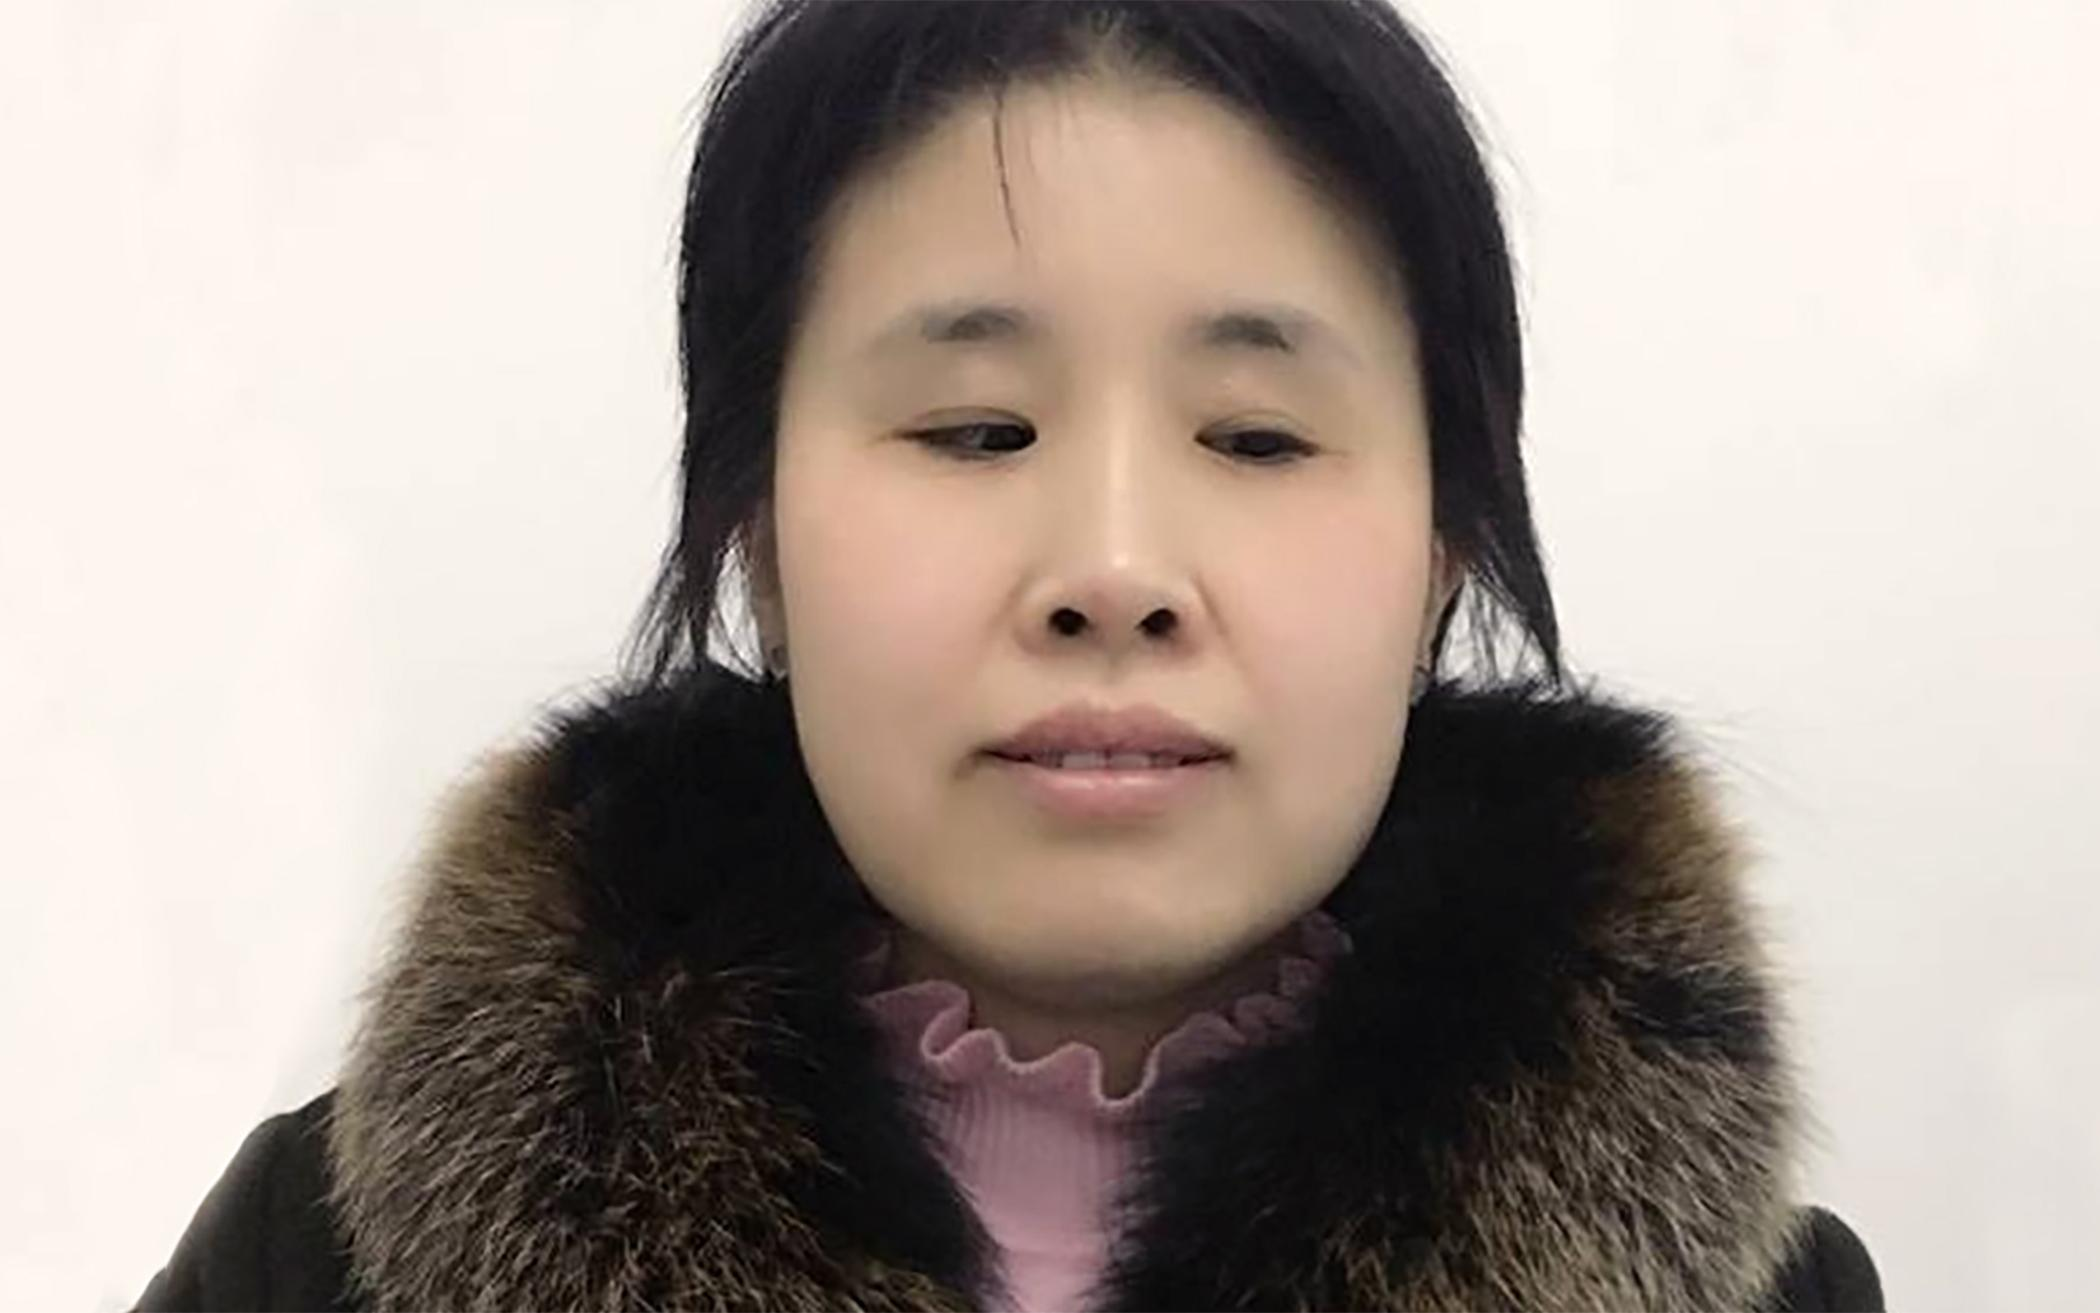 Not Useless: Light in Darkness